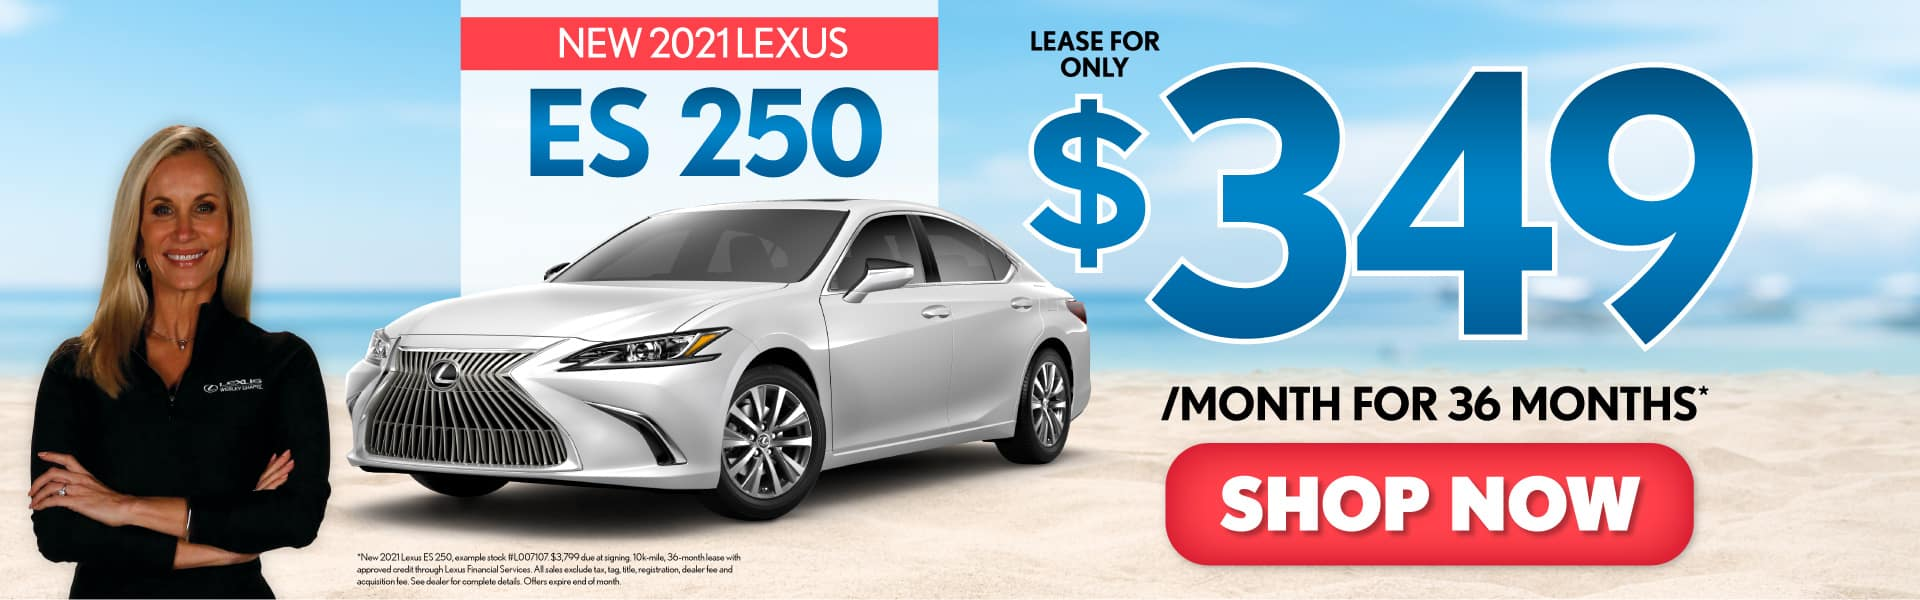 New 2021 Lexus ES 250 only $349/mo - ACT NOW